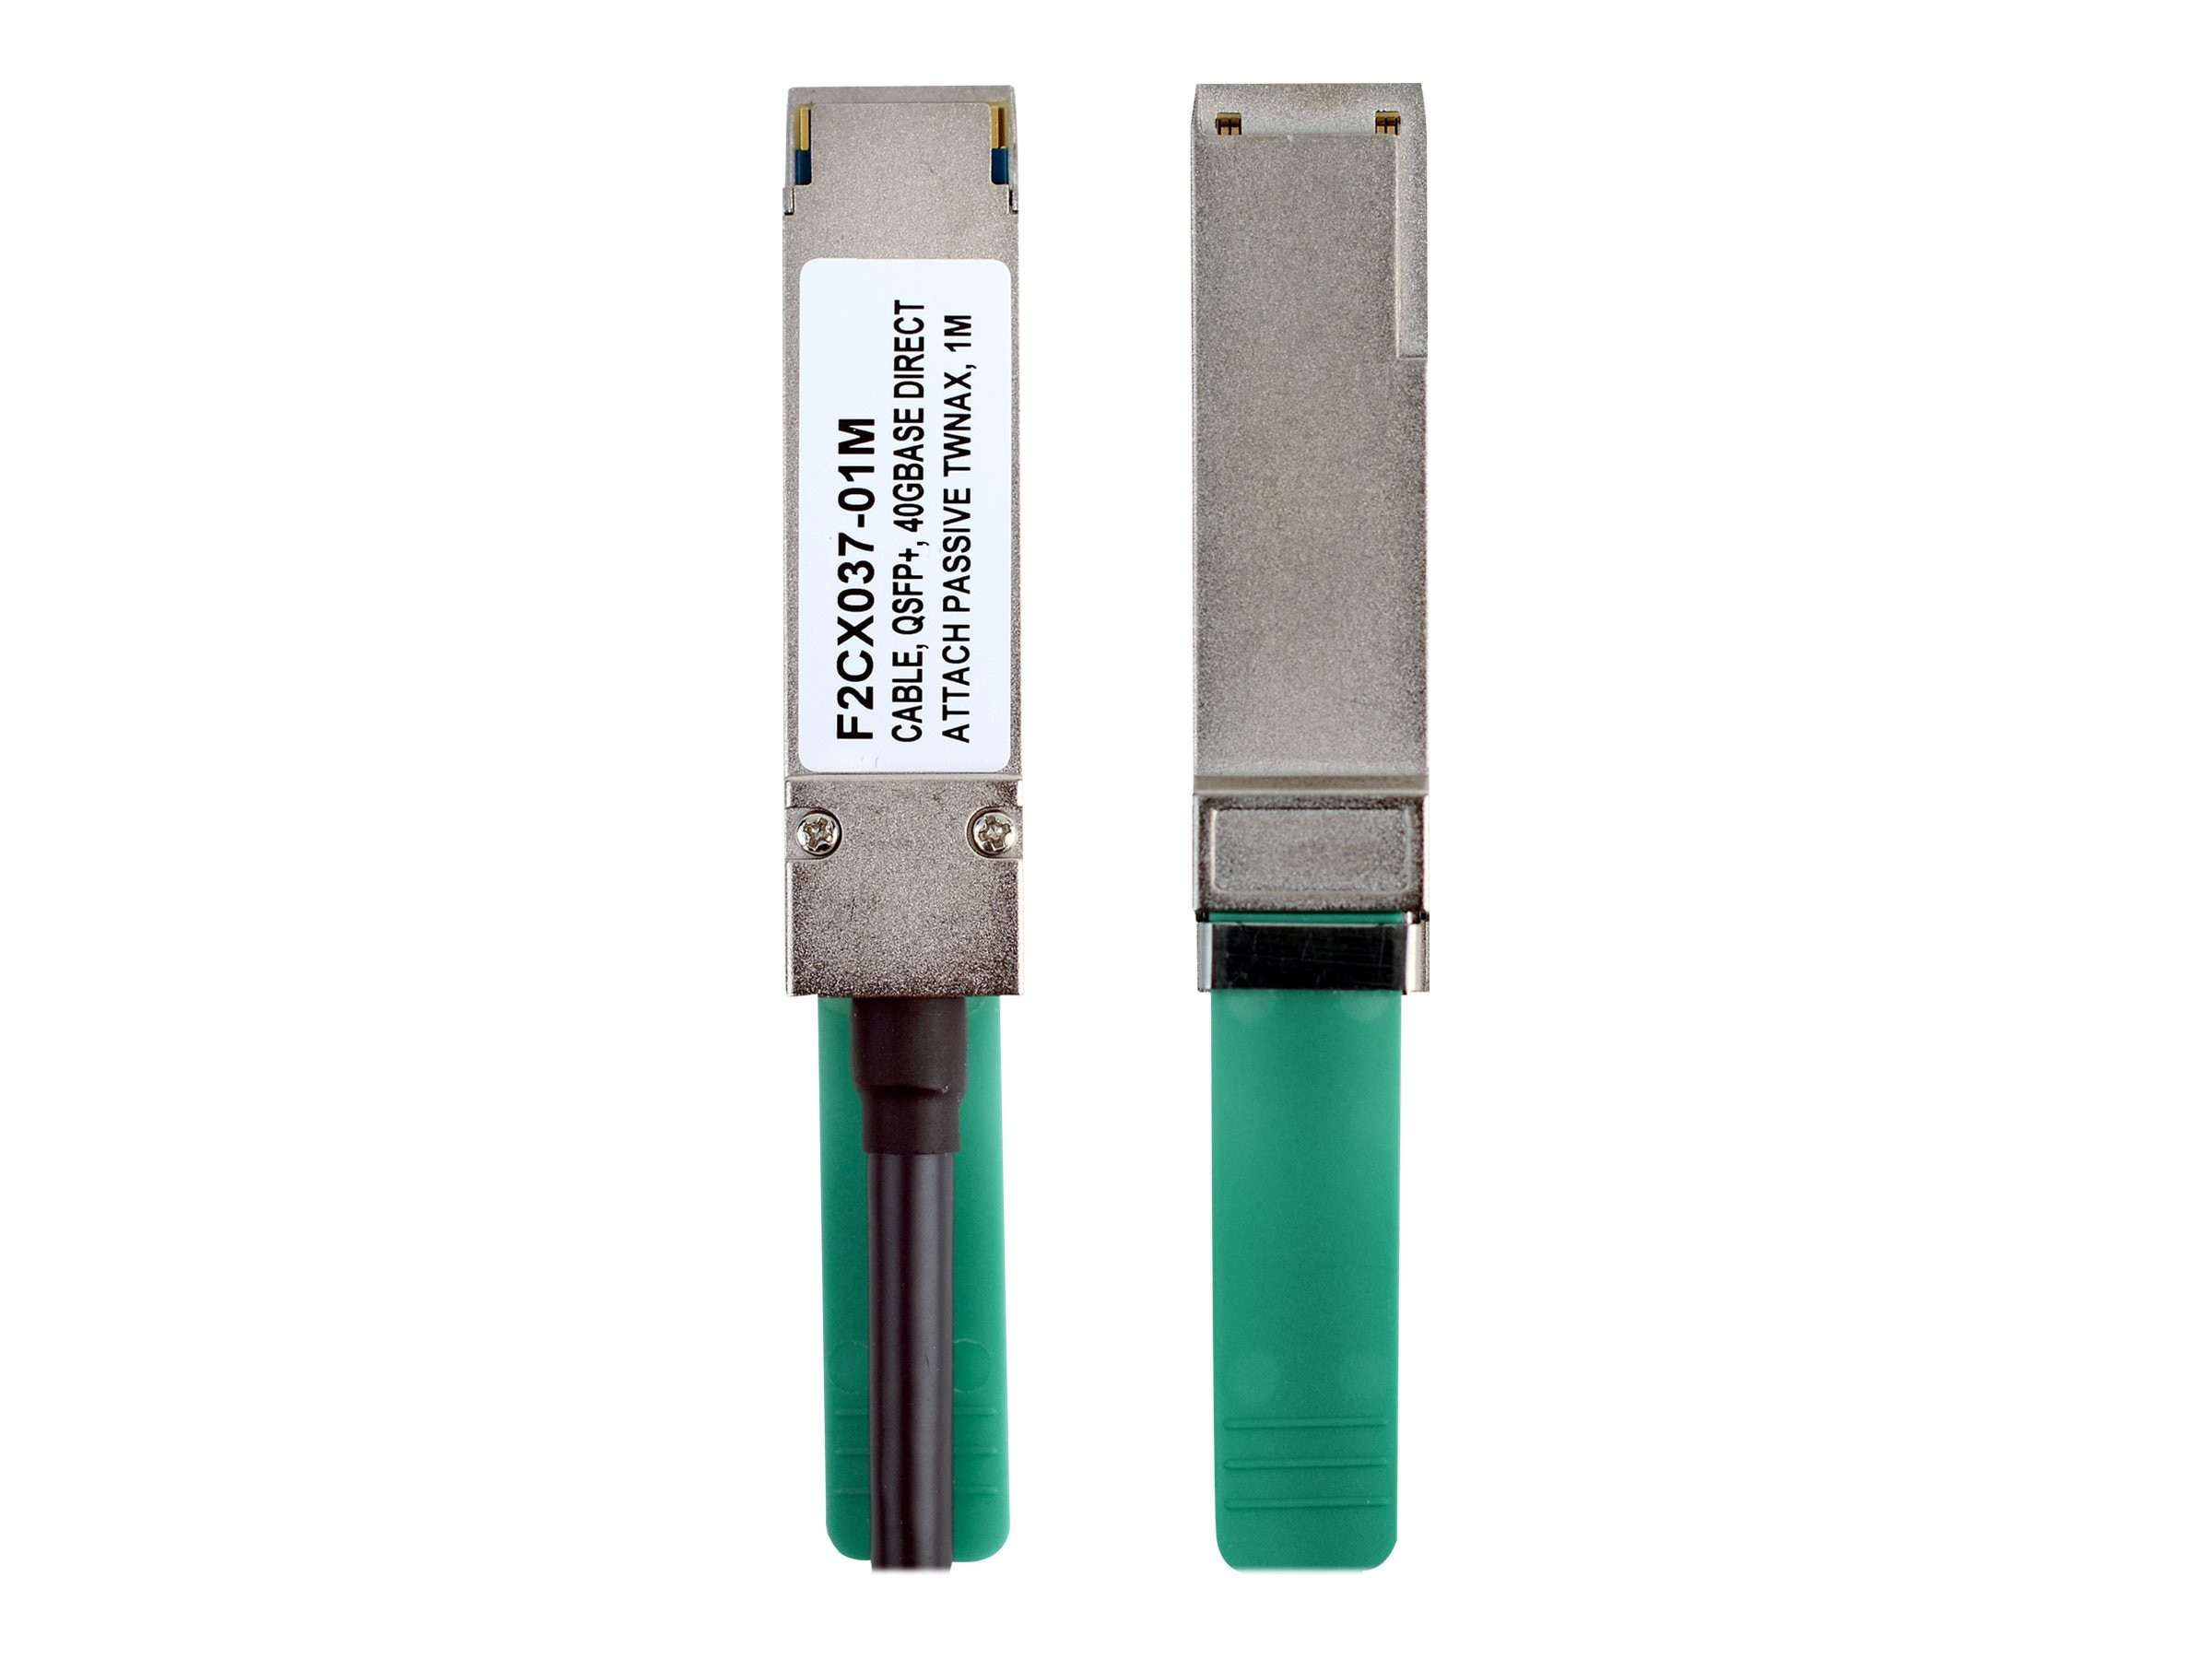 Belkin QSFP+ 40Gbase Direct Attach Passive Twinaxial Cable, 2m, F2CX037-02M